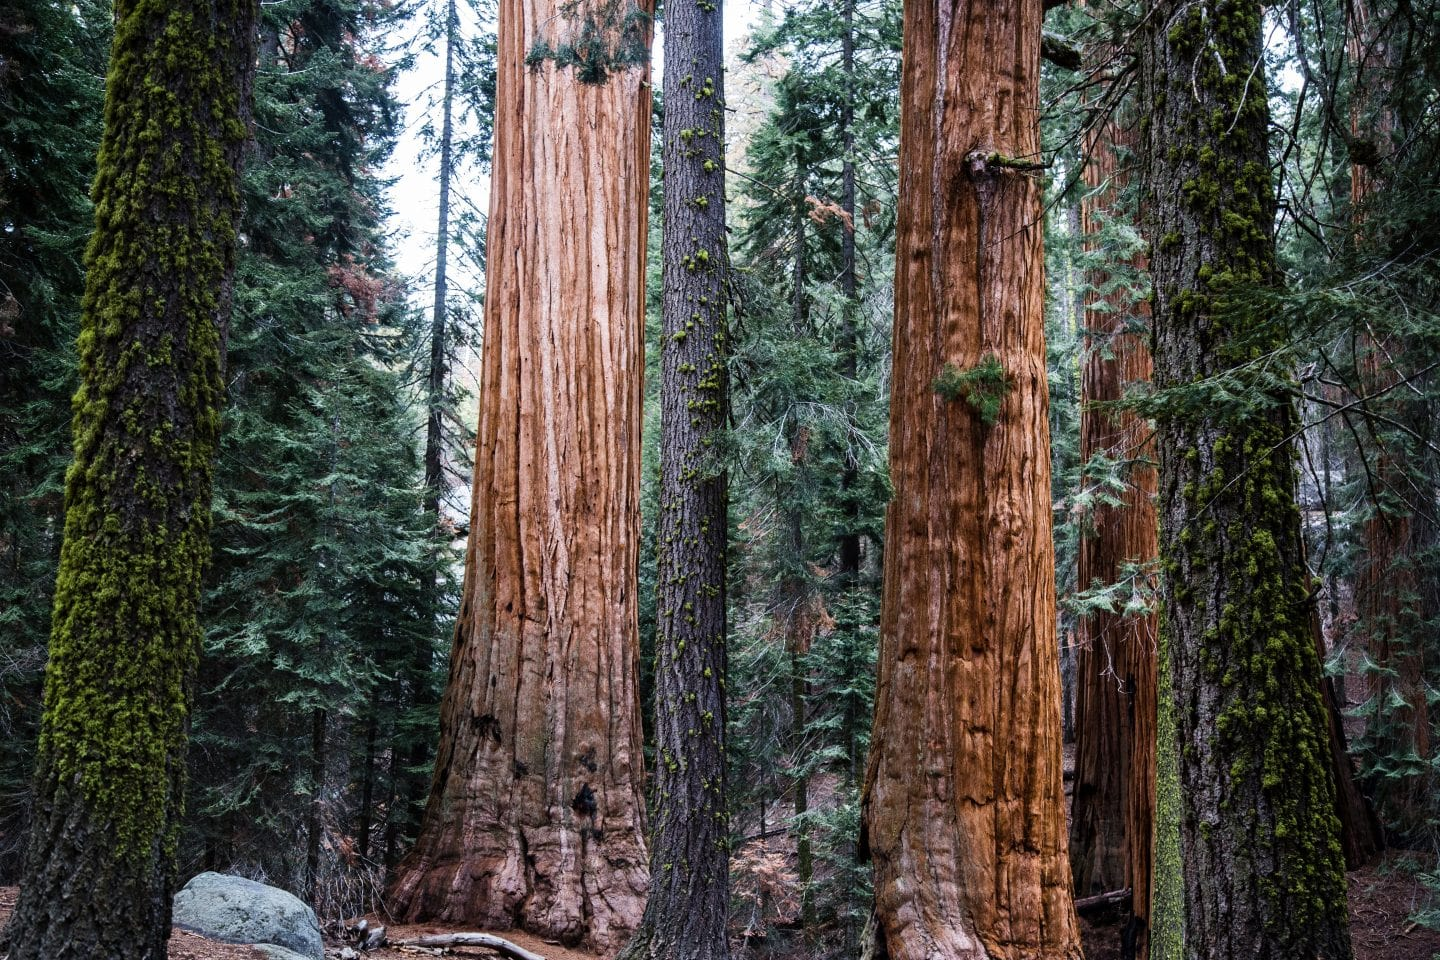 Sequoia National Park is home to the General Sherman Tree, the largest tree in the world.